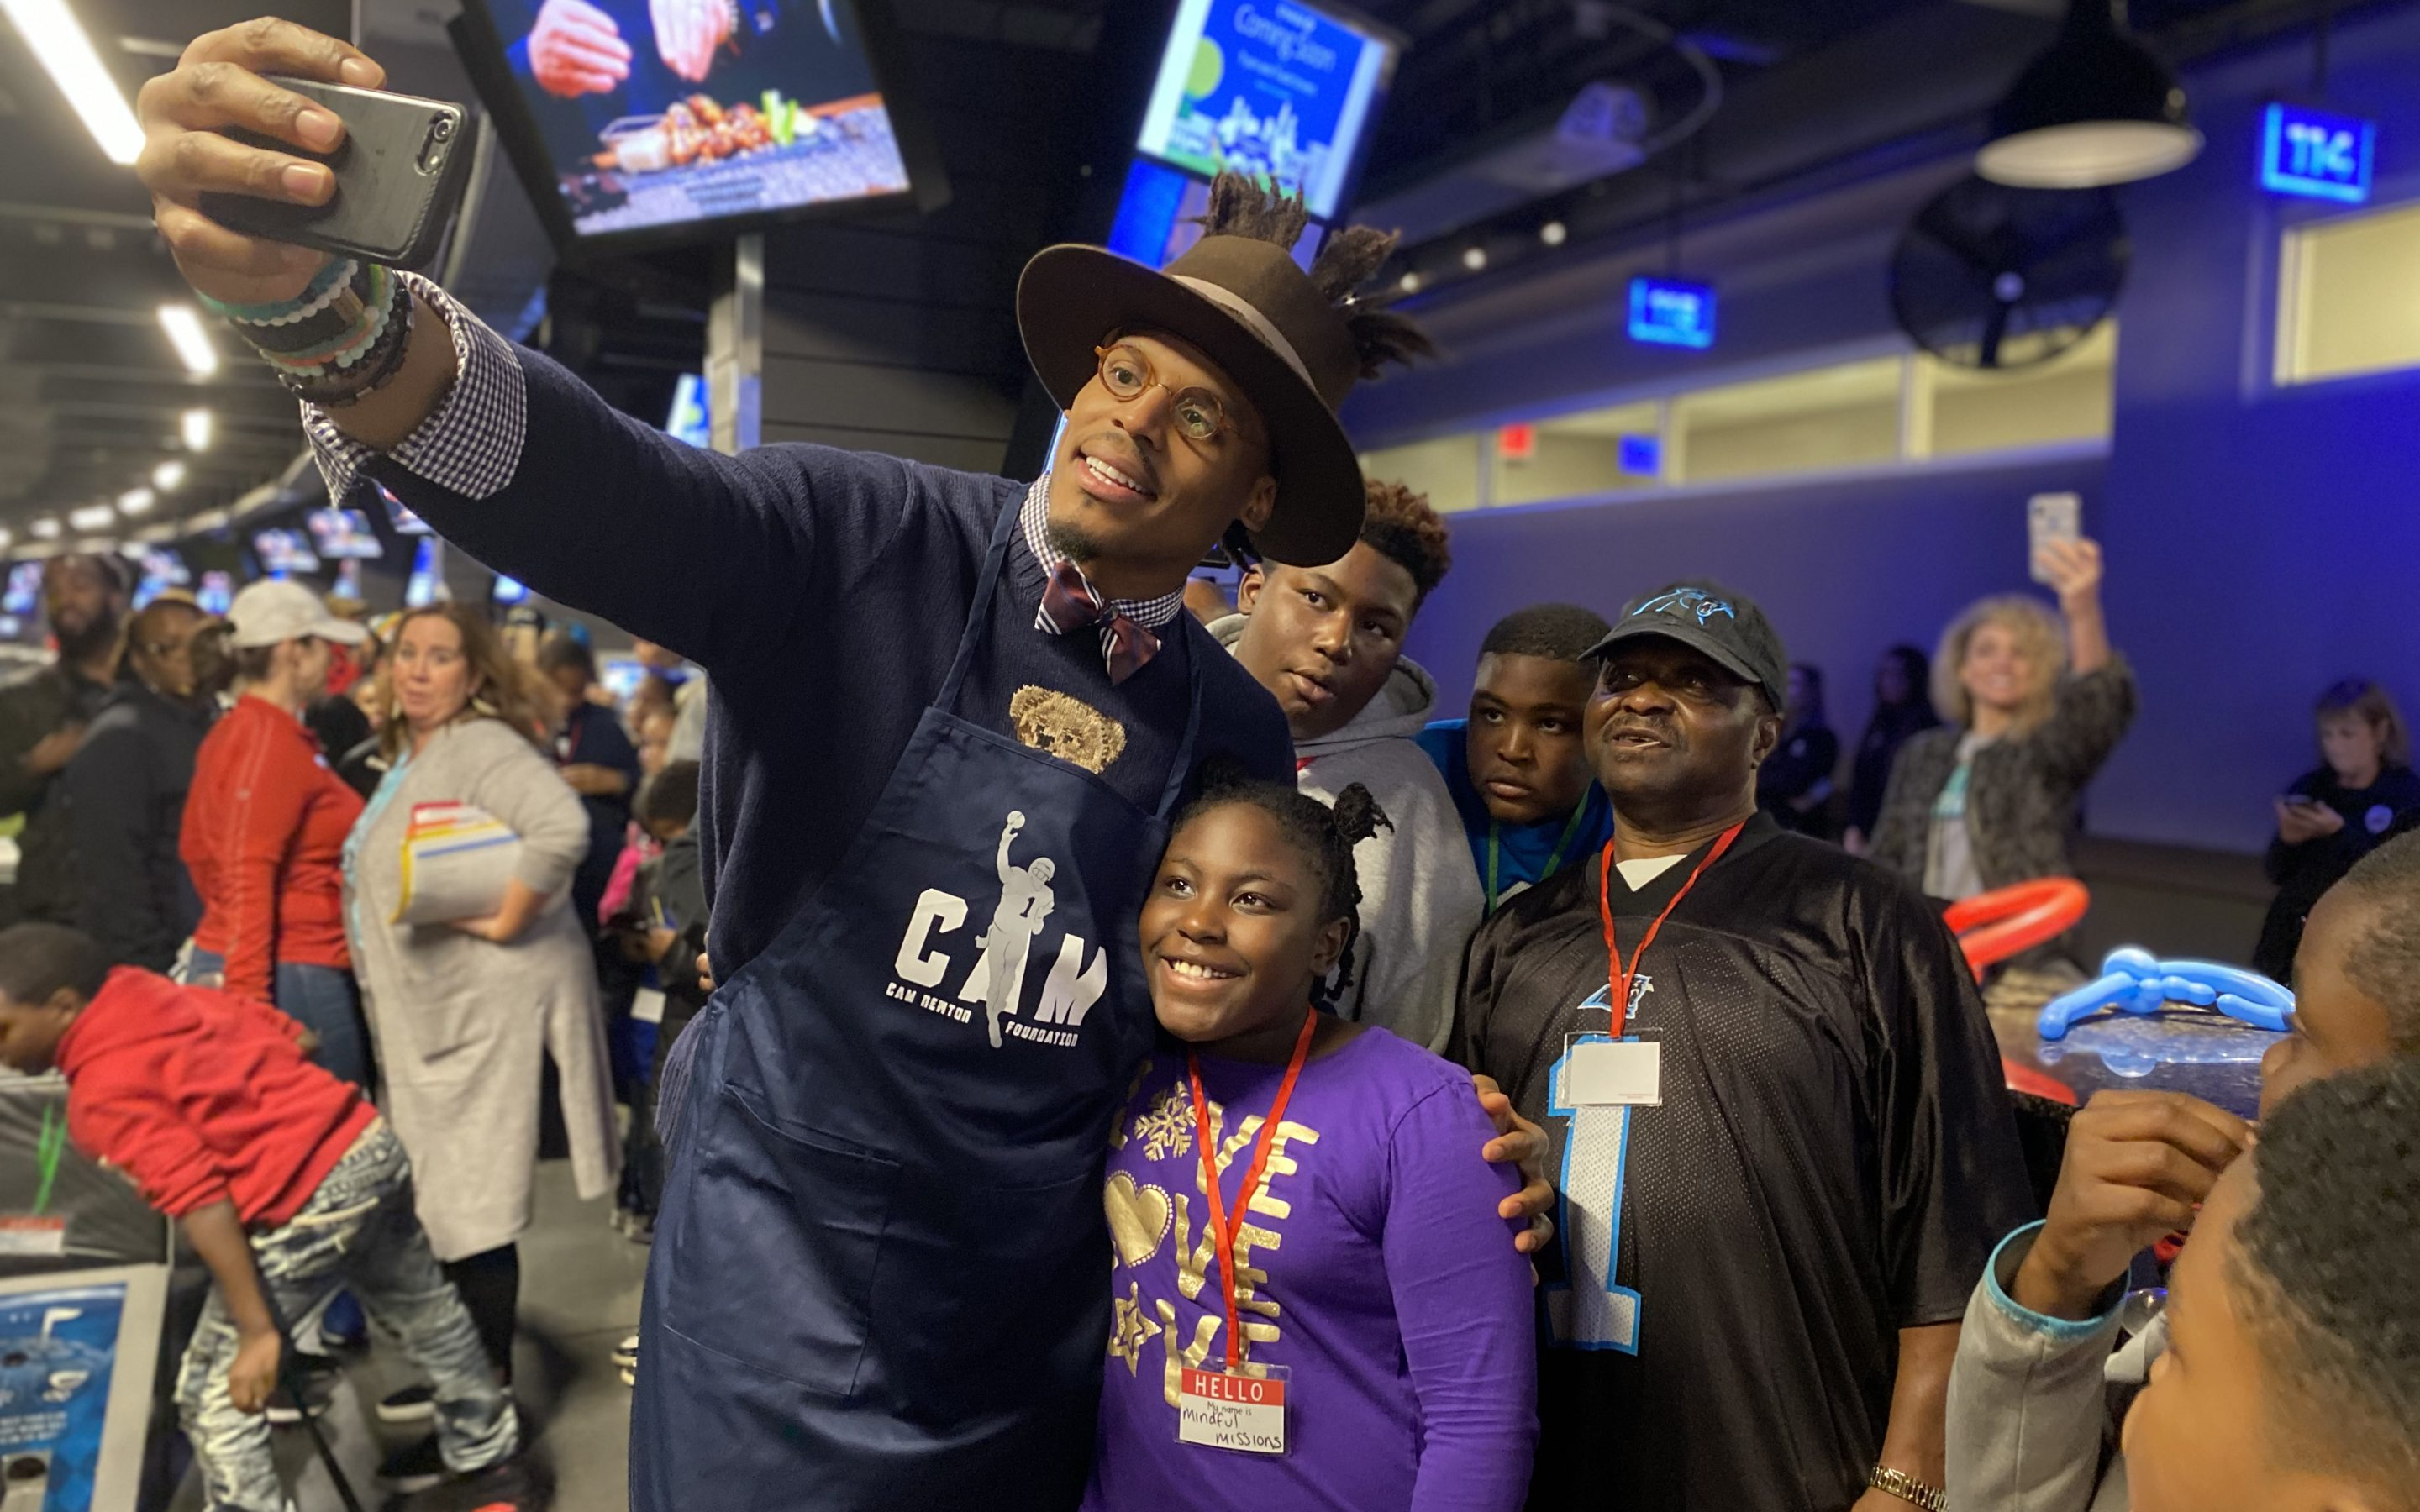 Panthers Fans Help Cam Newton Win Nationwide's Charity Challenge